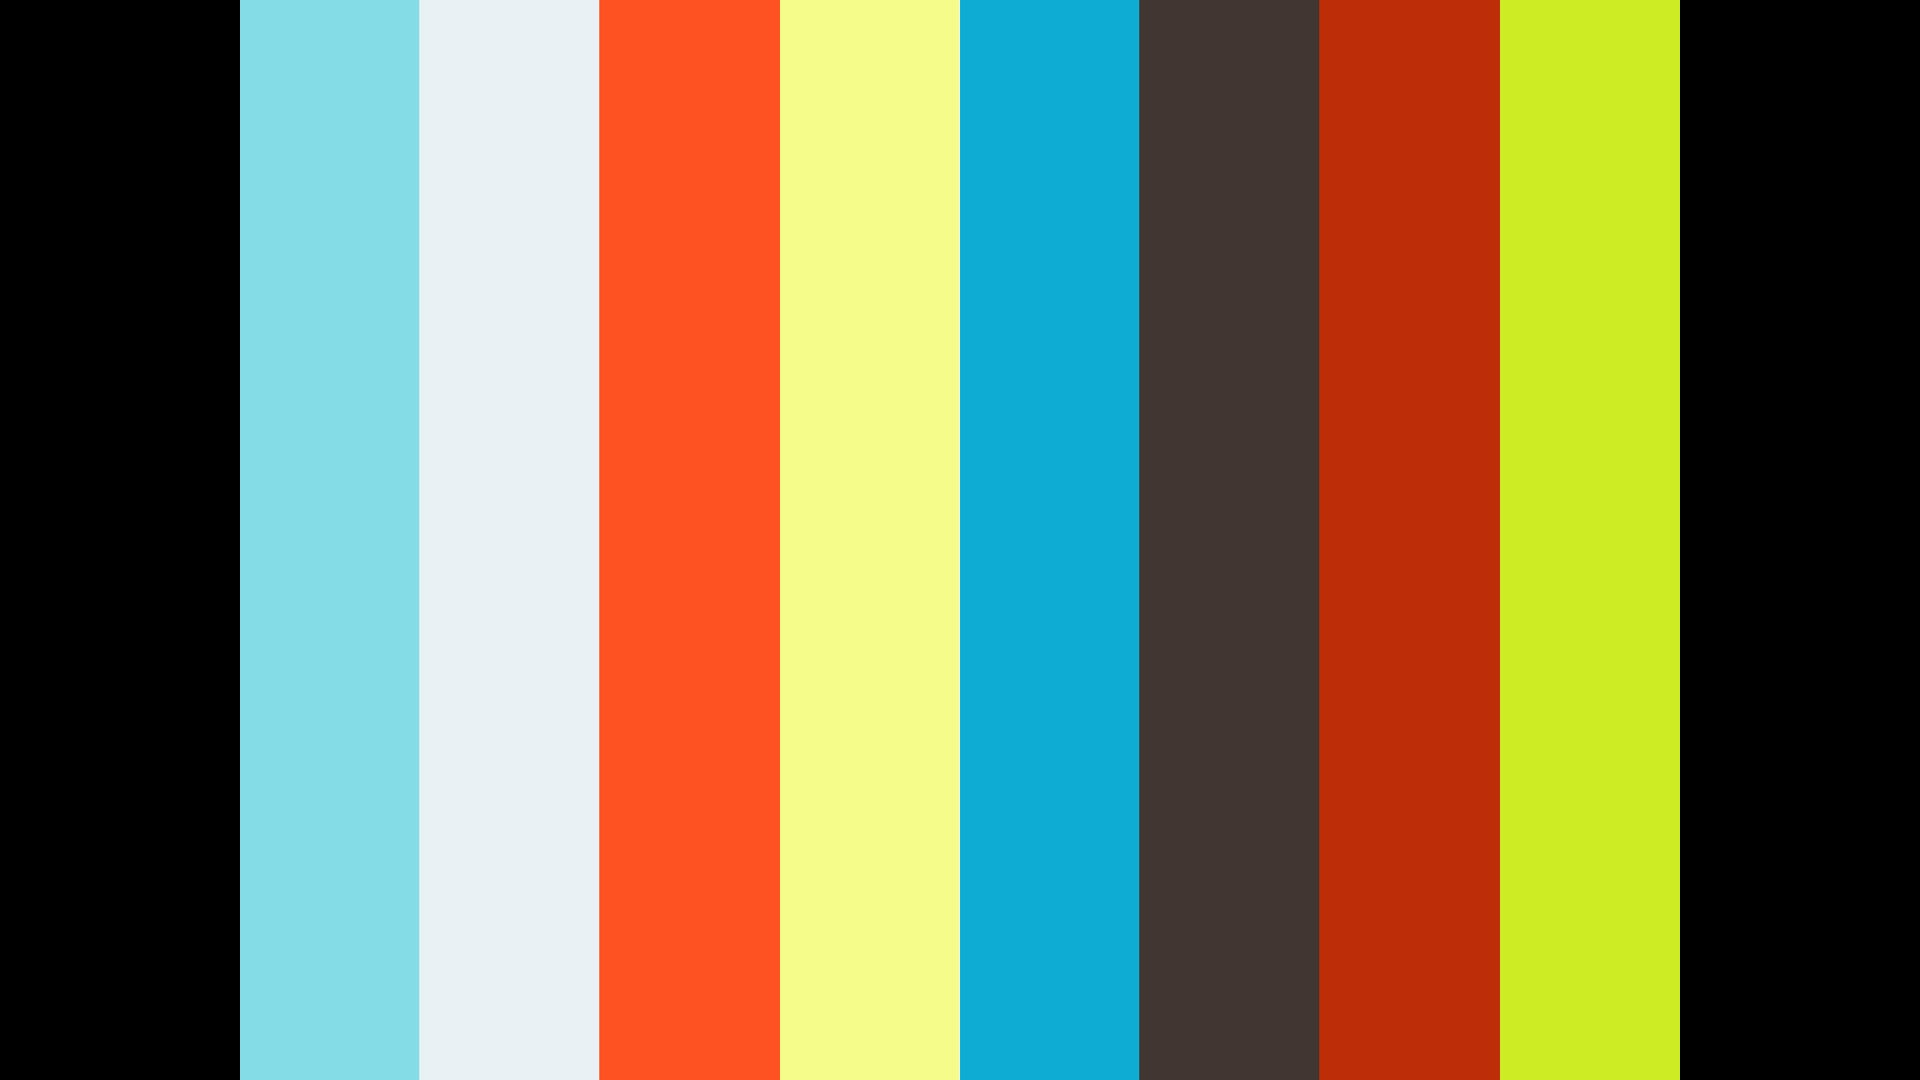 Introduction of Karl Schoonover by Amy Villarejo [5]